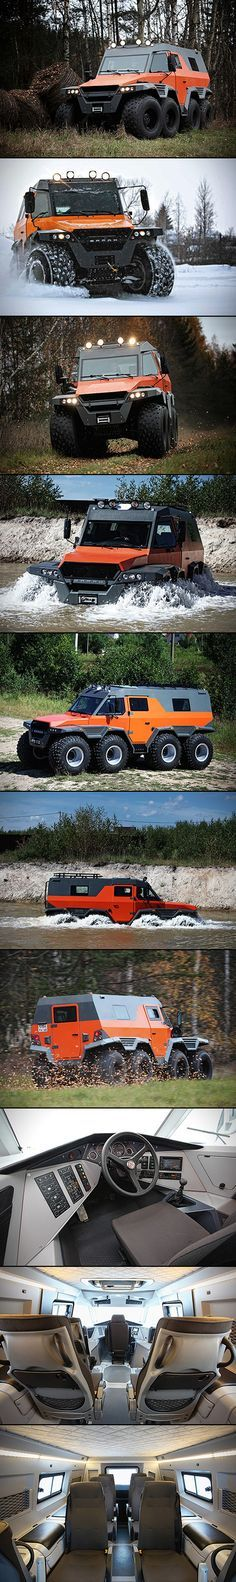 In case of zombies, there's all-terrain vehicles, and then there's the Avtoros Shaman 8×8 all-terrain vehicle – the end all, be all for ATVs. Measuring in at 6 meters long, 3 meters high, and 2.5 meters wide, this 2.5-ton beast can tackle literally any terrain, from land and snow right down to floating through water. The vehicle is powered by an Iveco F1C 3.0-liter turbo diesel that pumps out 146-horsepower through a 6-speed manual gearbox, but it's the steering system that makes this thing…